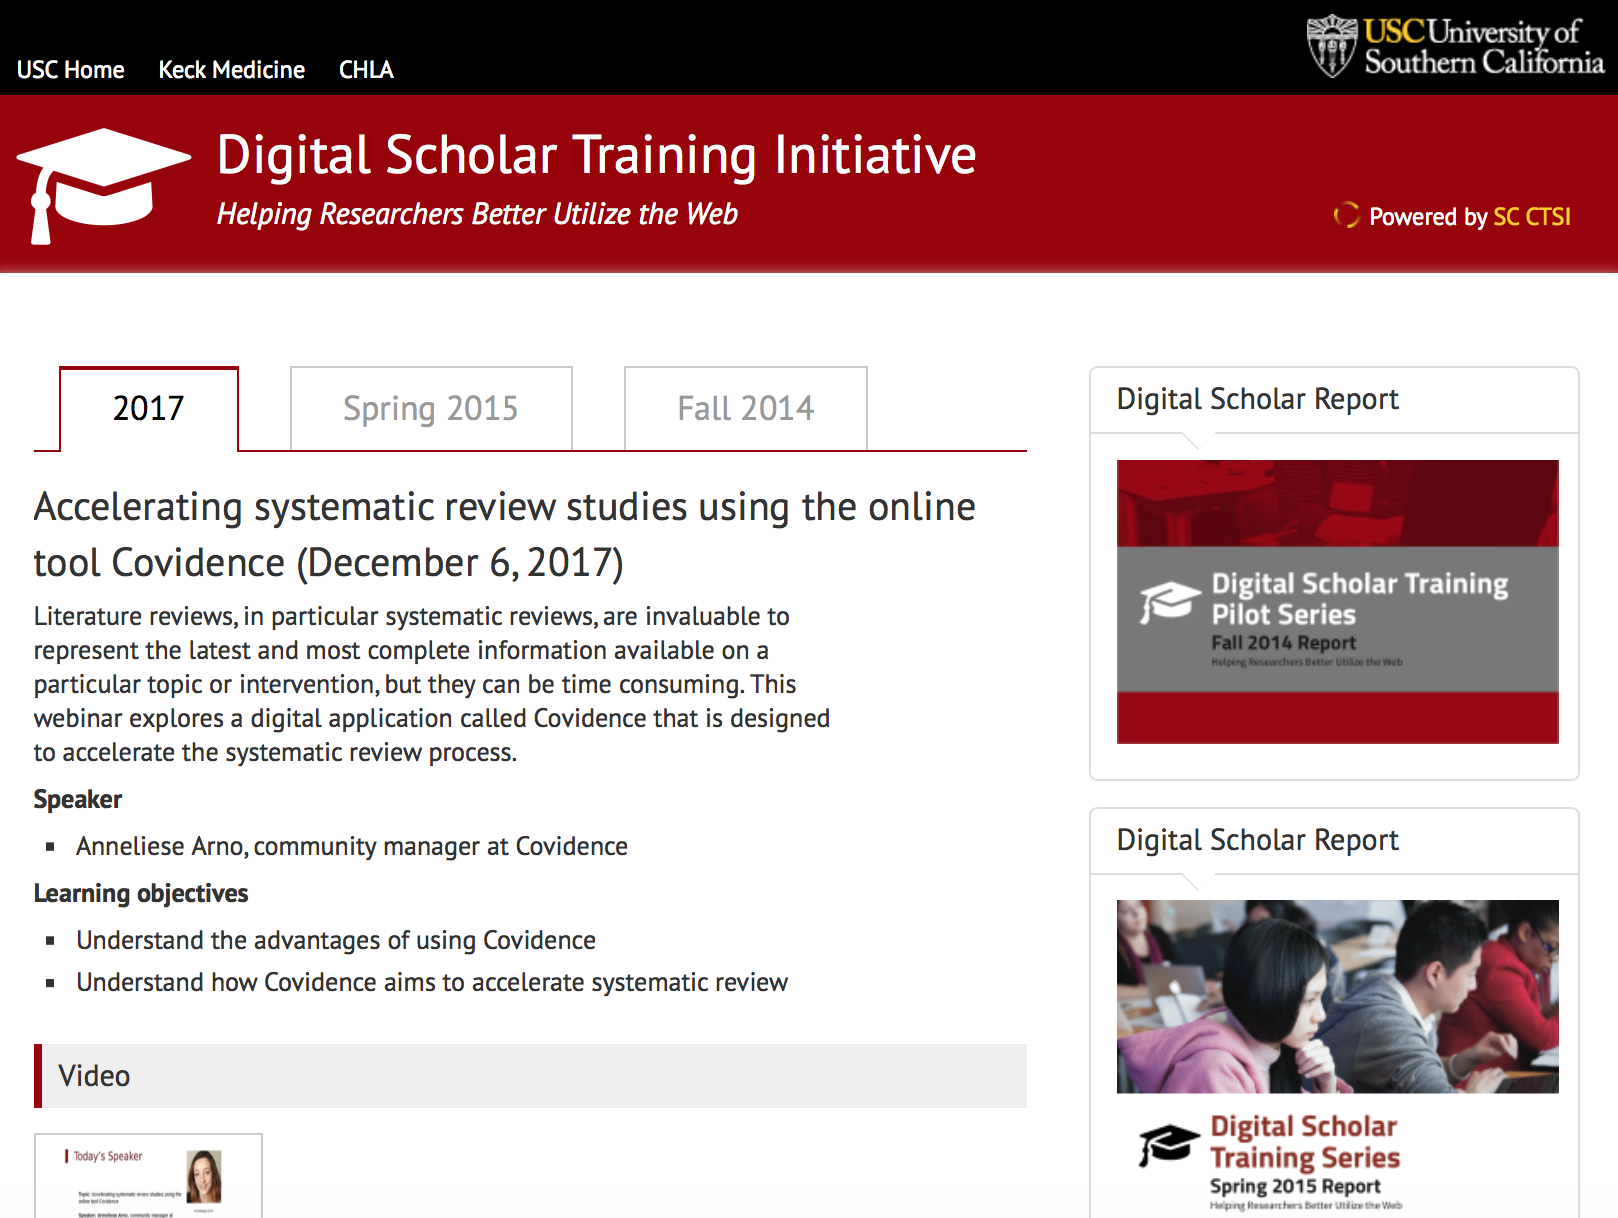 enhancing_clinical_translational_research_through_Training_in_Digital_Practices_and_Approaches.png#asset:3133